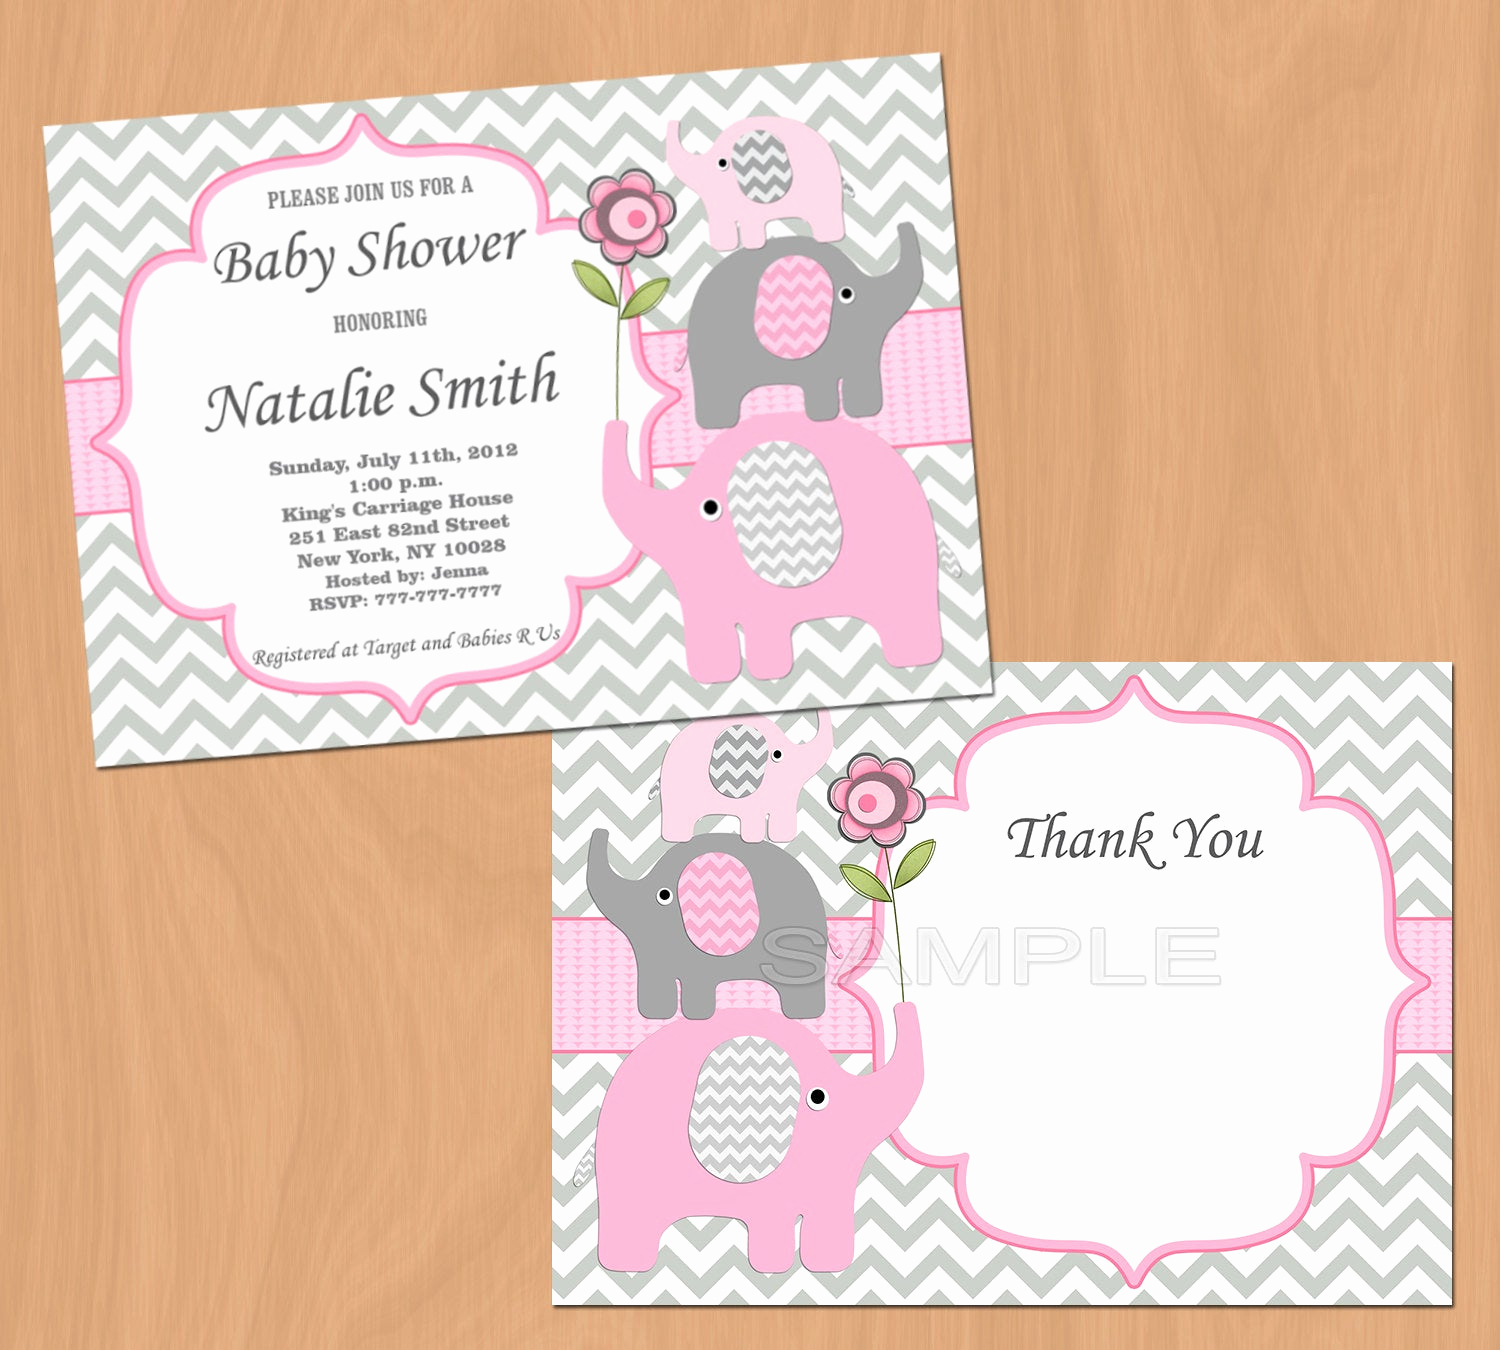 Baby Shower Invitation for Girl Awesome Girl Baby Shower Invitation Elephant Baby Shower Invitation